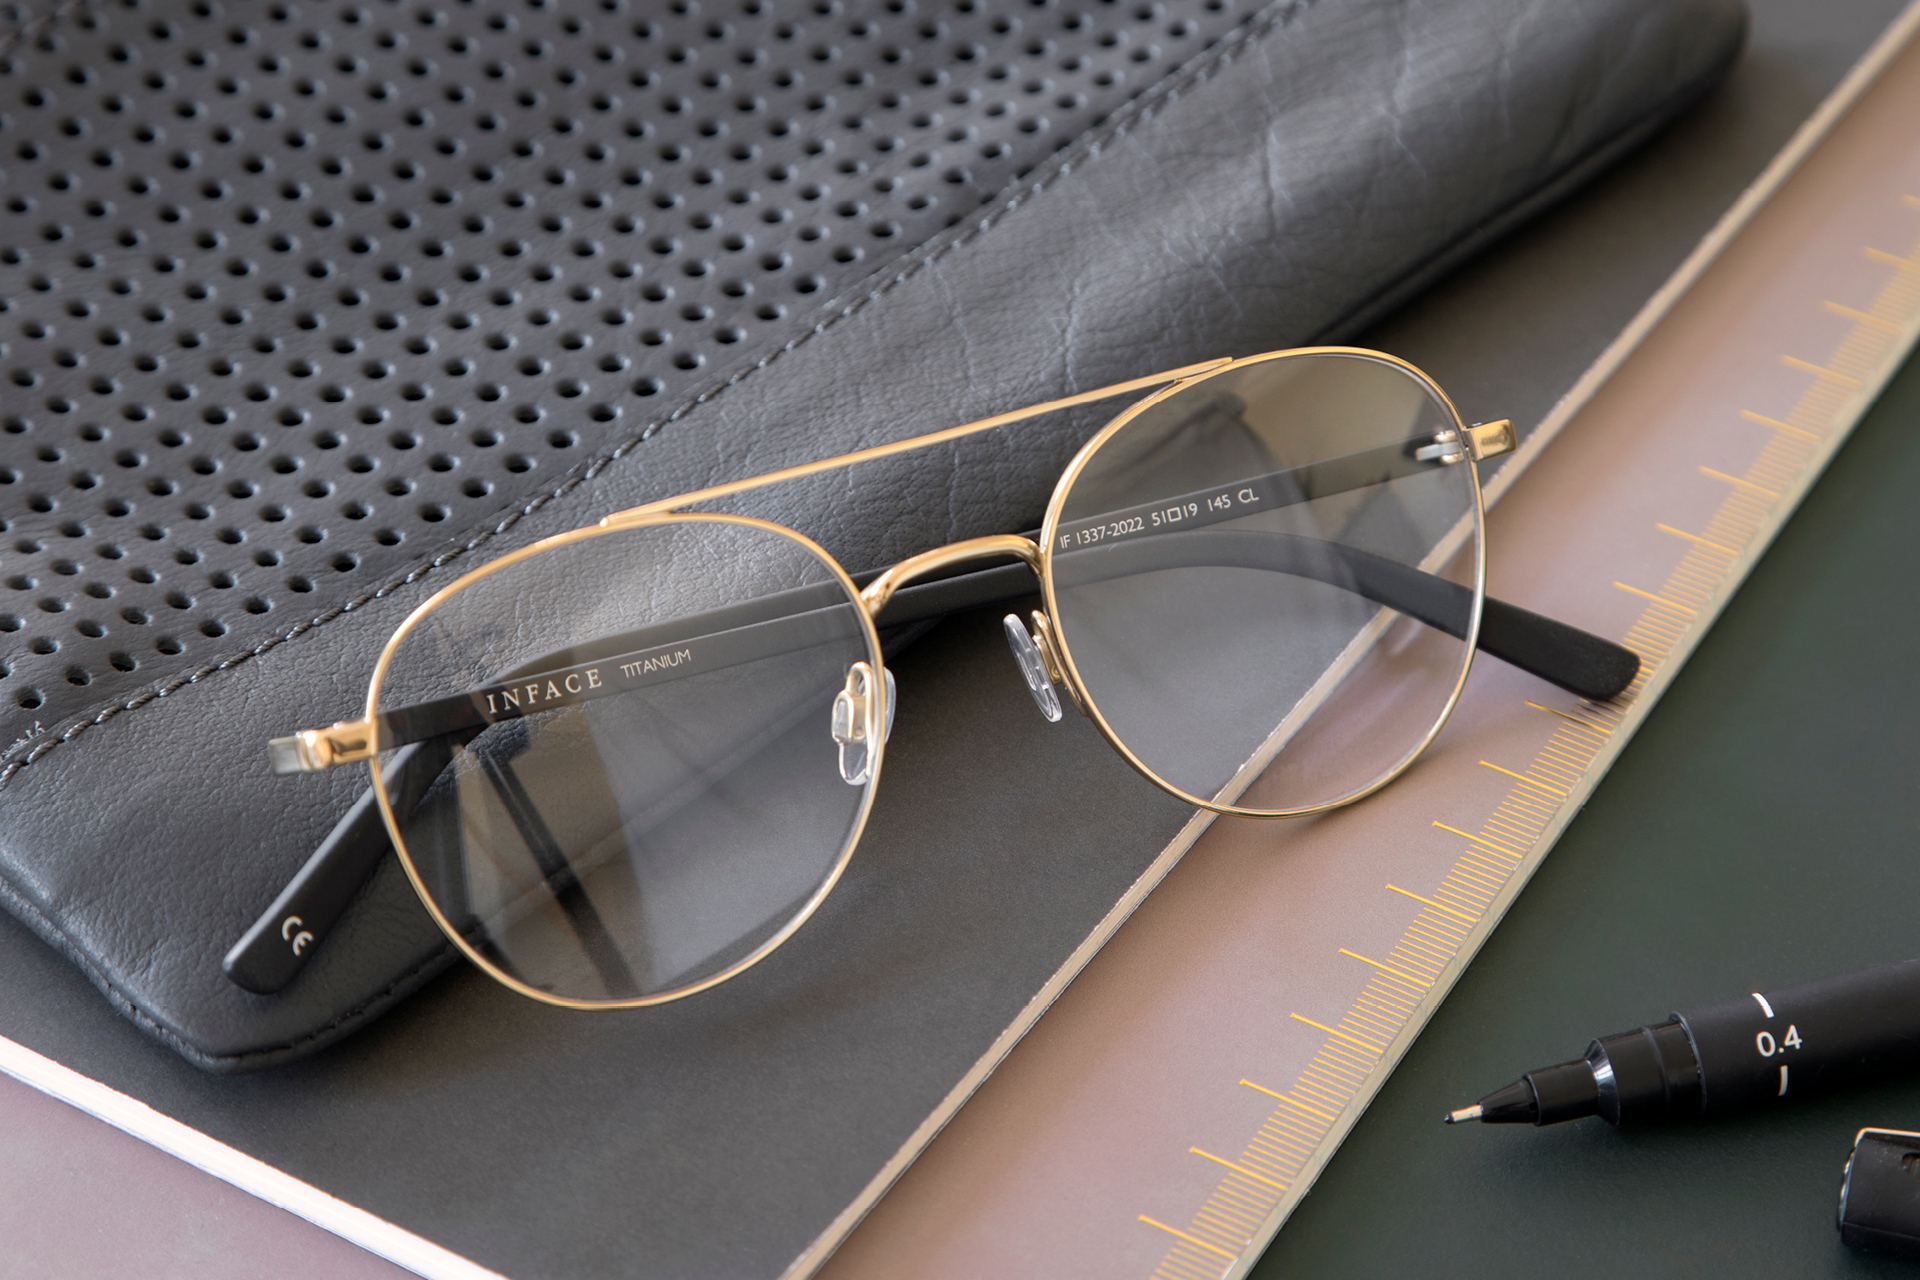 Inface – Stylish and affordable titanium eyewear